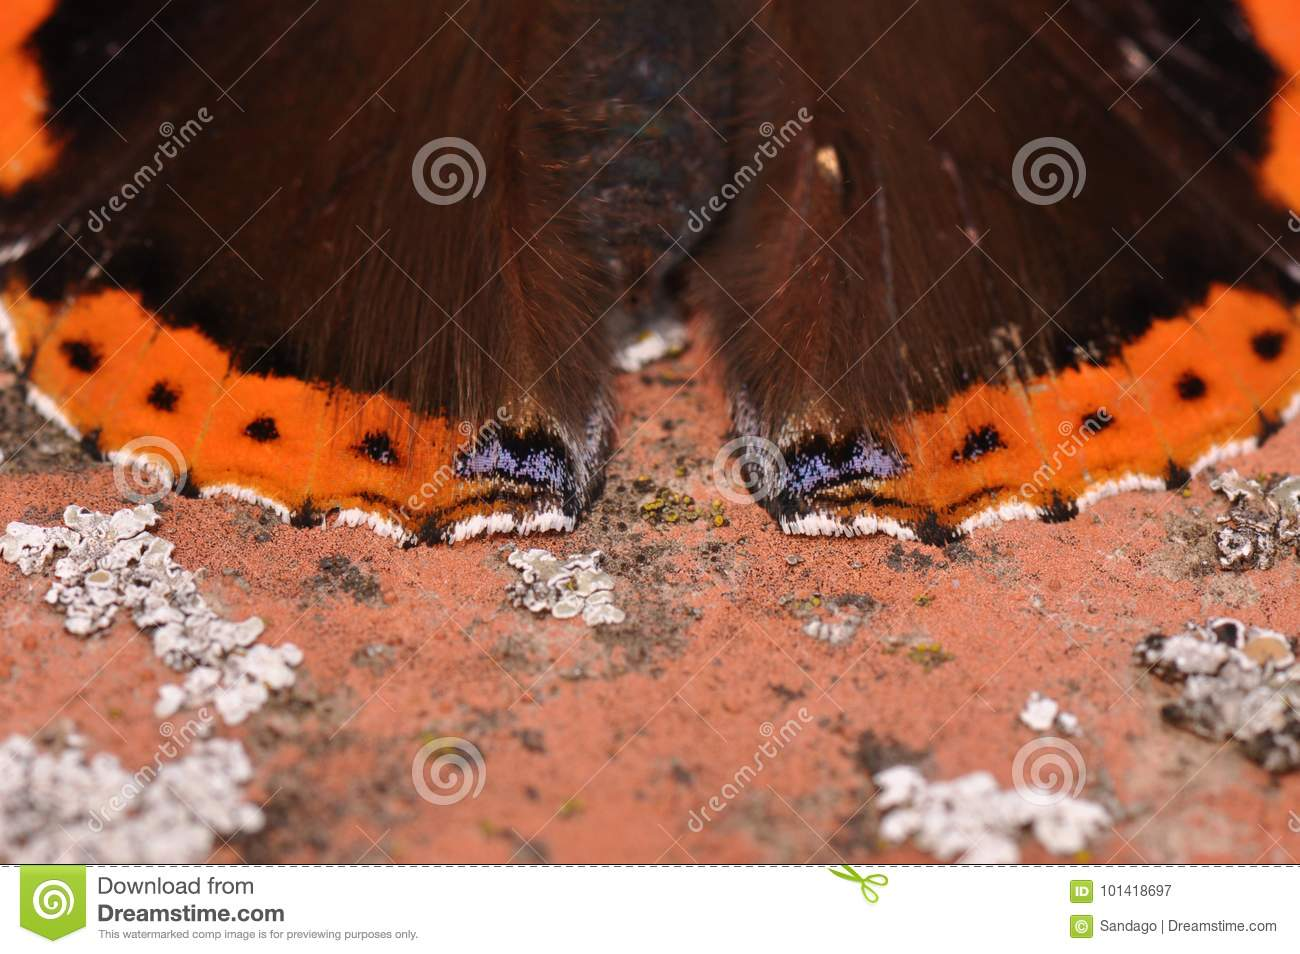 Red Admiral Butterfly detail